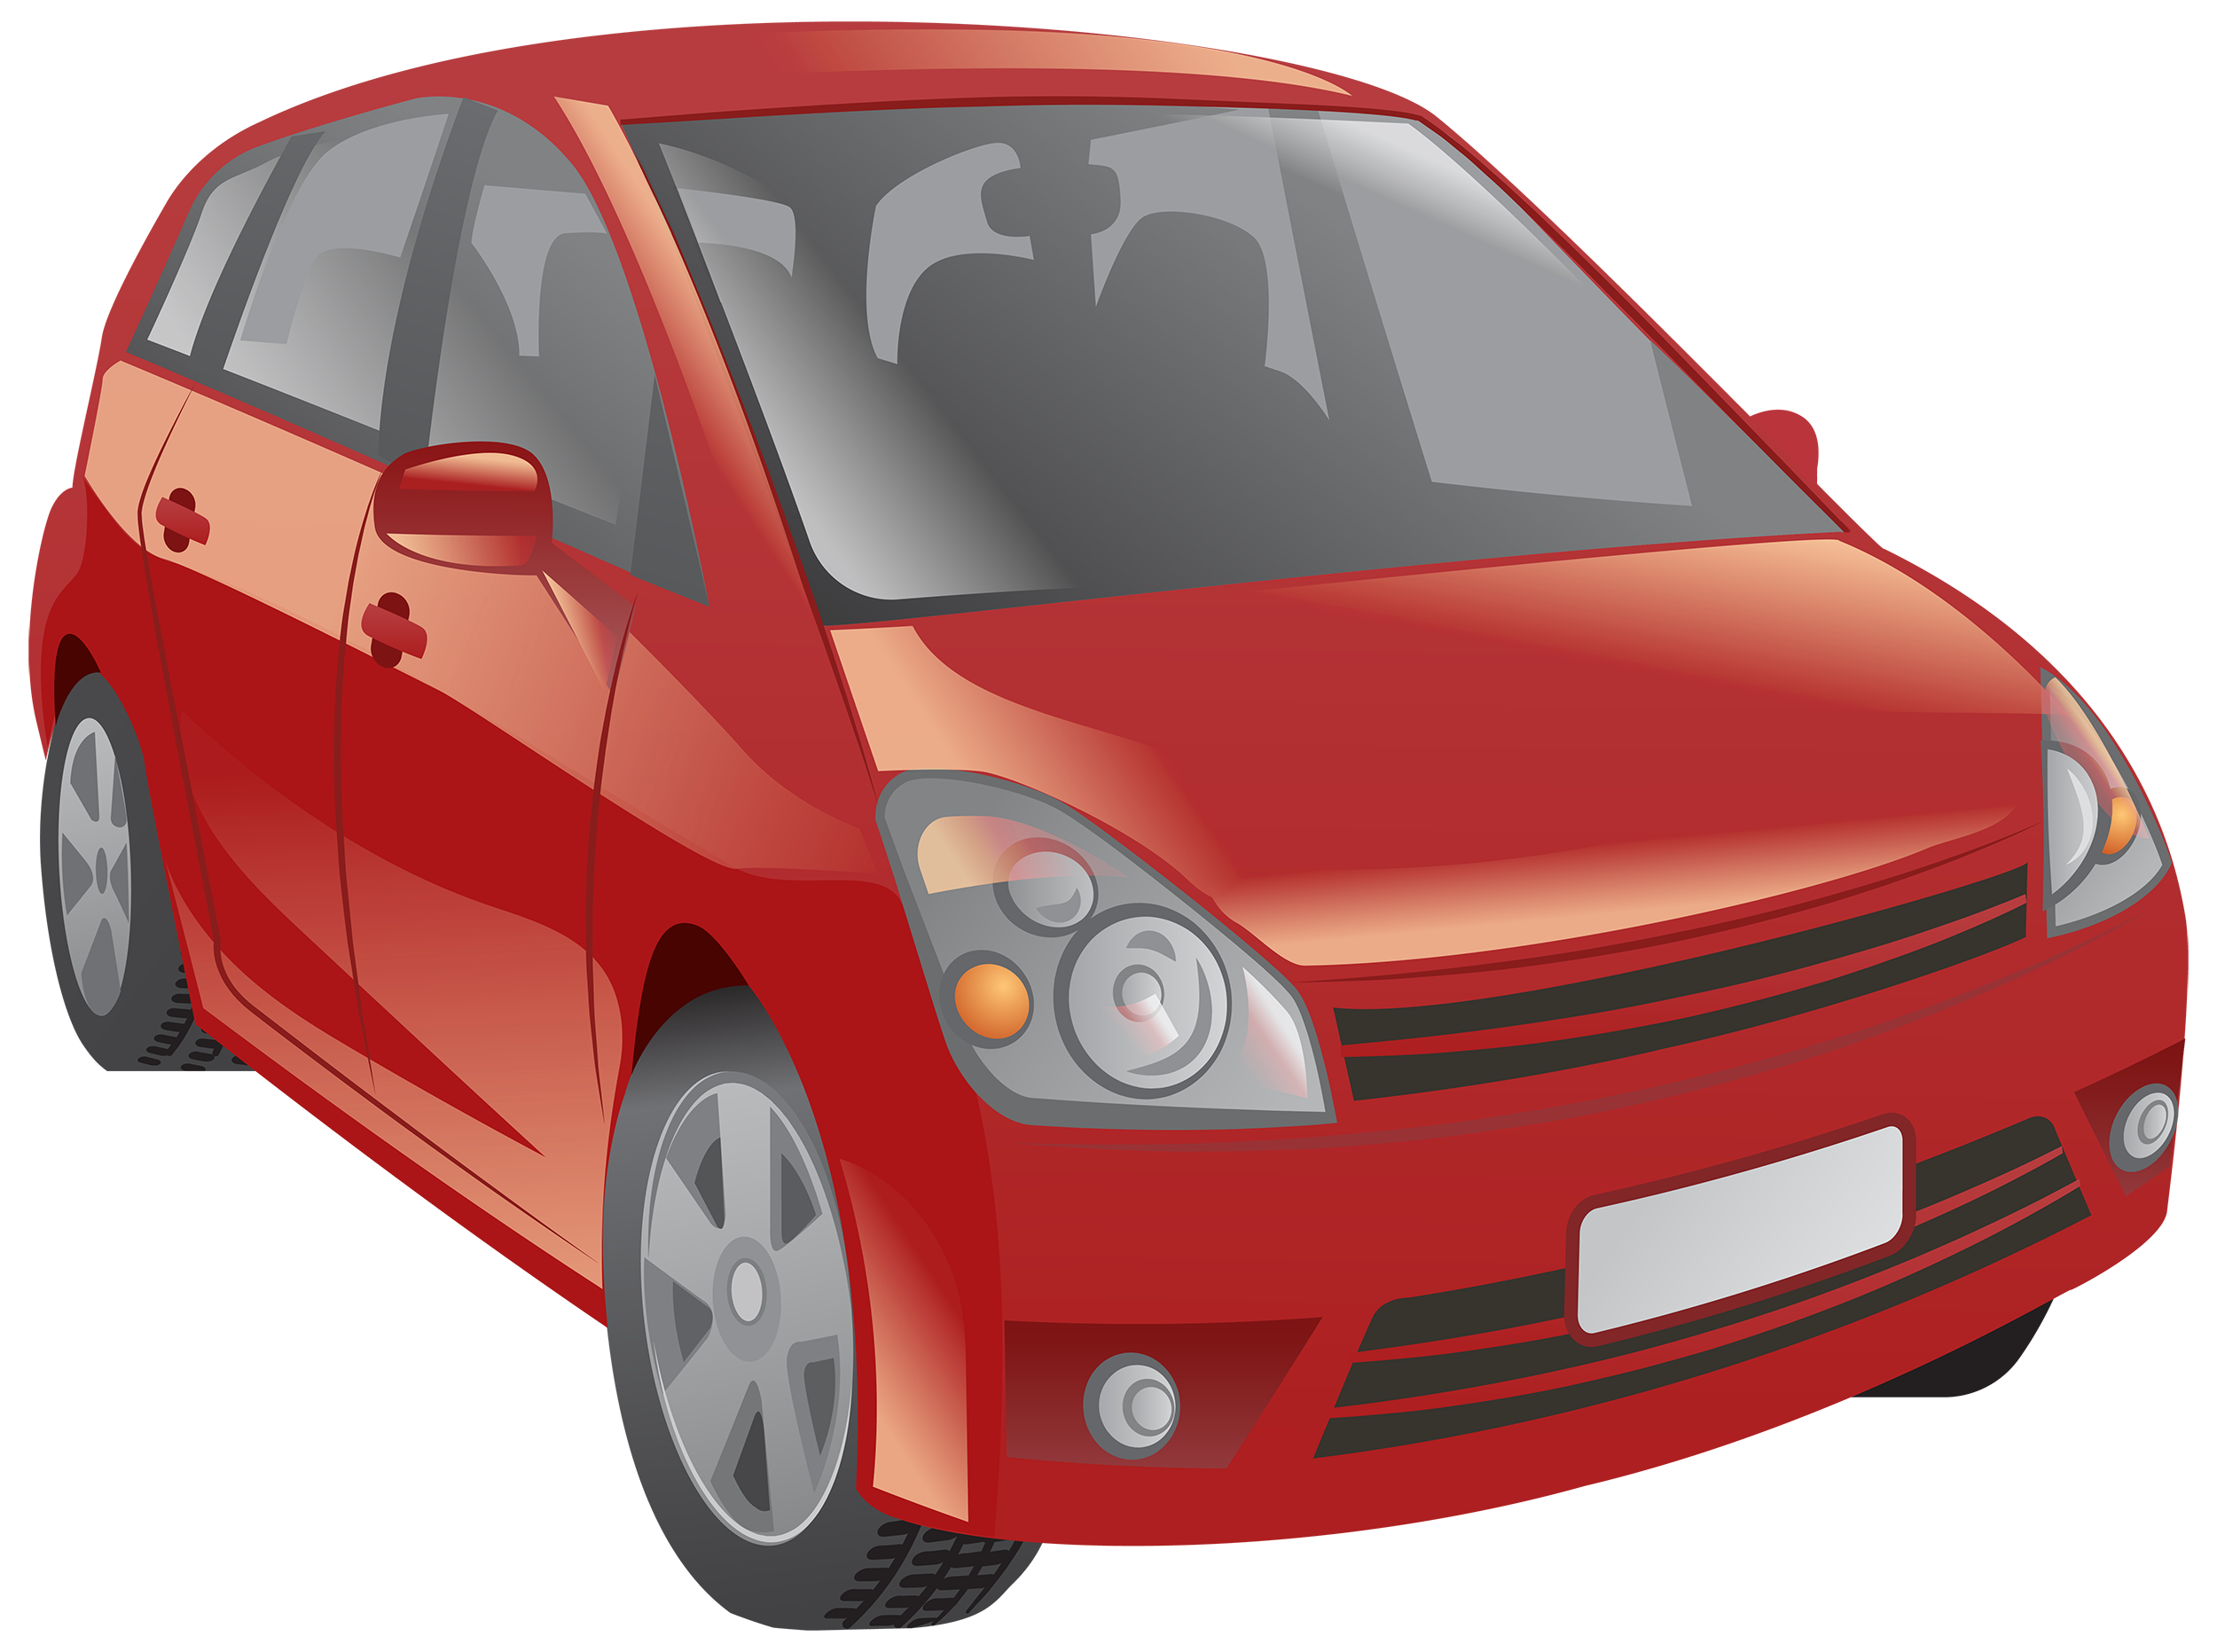 Car clipart images svg freeuse library Red Car PNG Clipart - Best WEB Clipart svg freeuse library